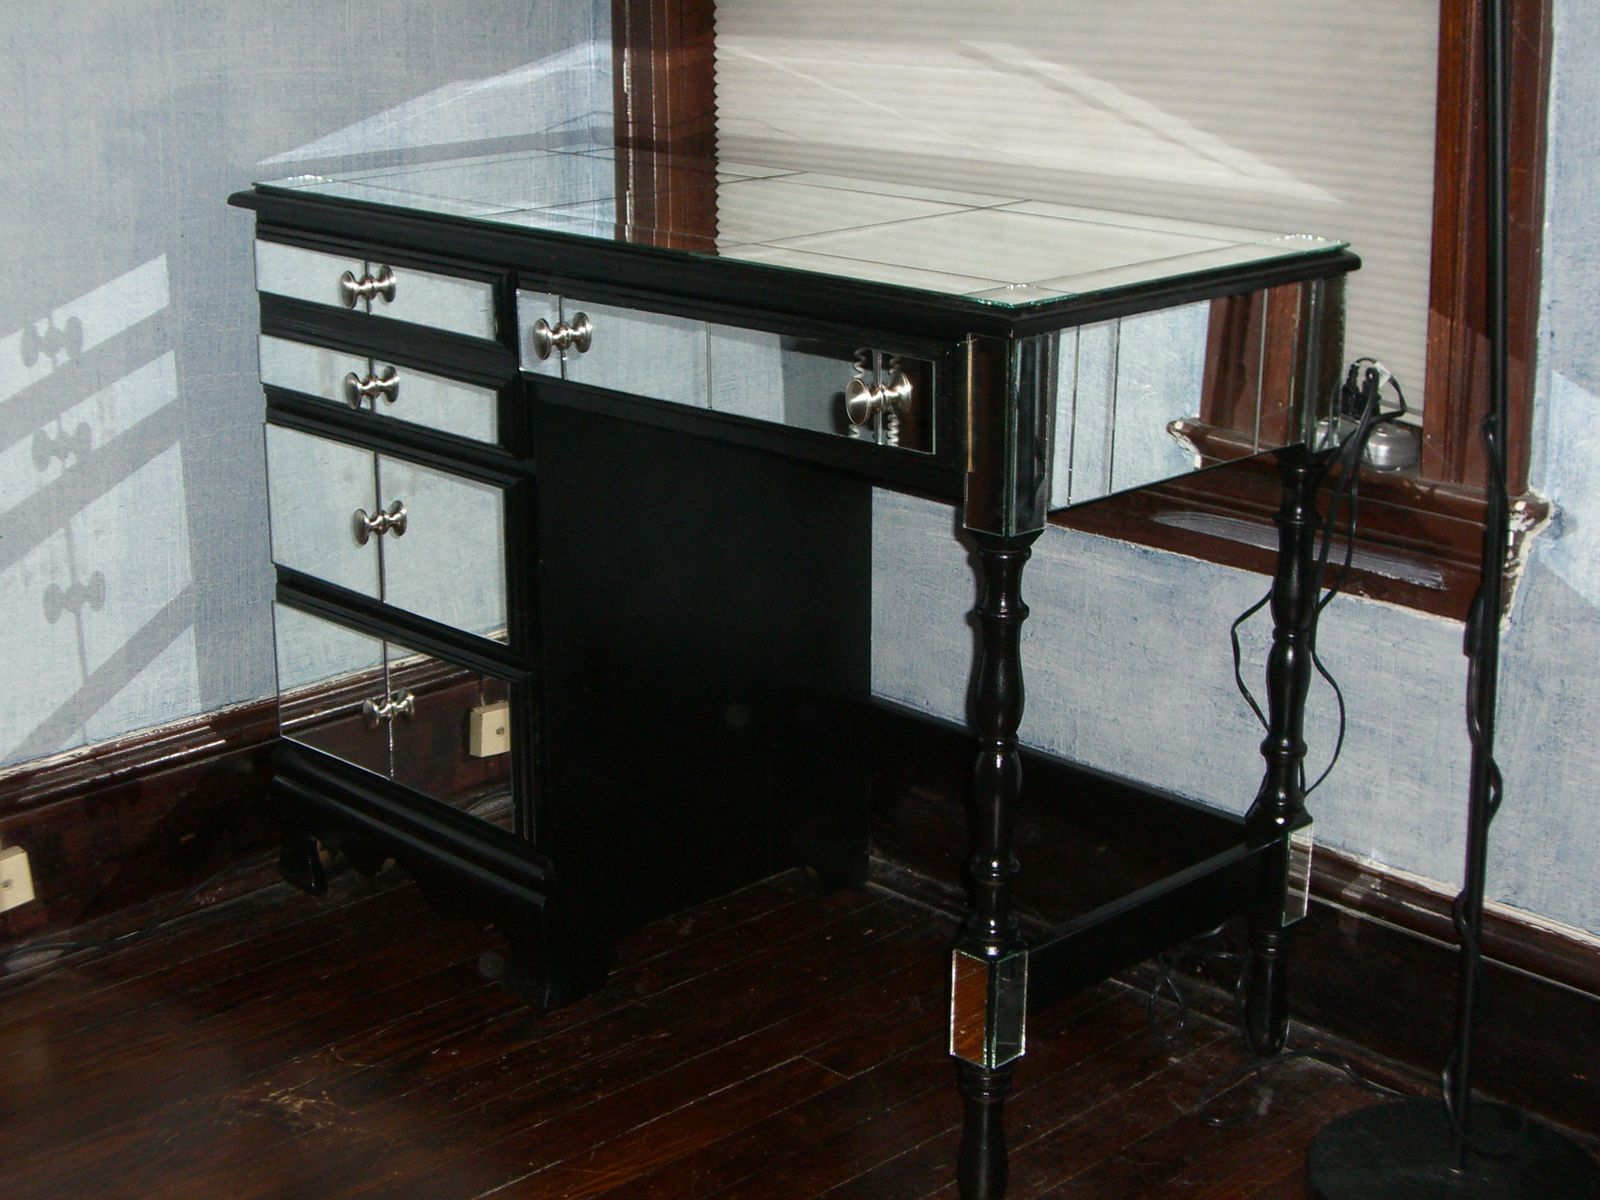 Black Vanity Table Without Mirror Makeup Vanity Table Without